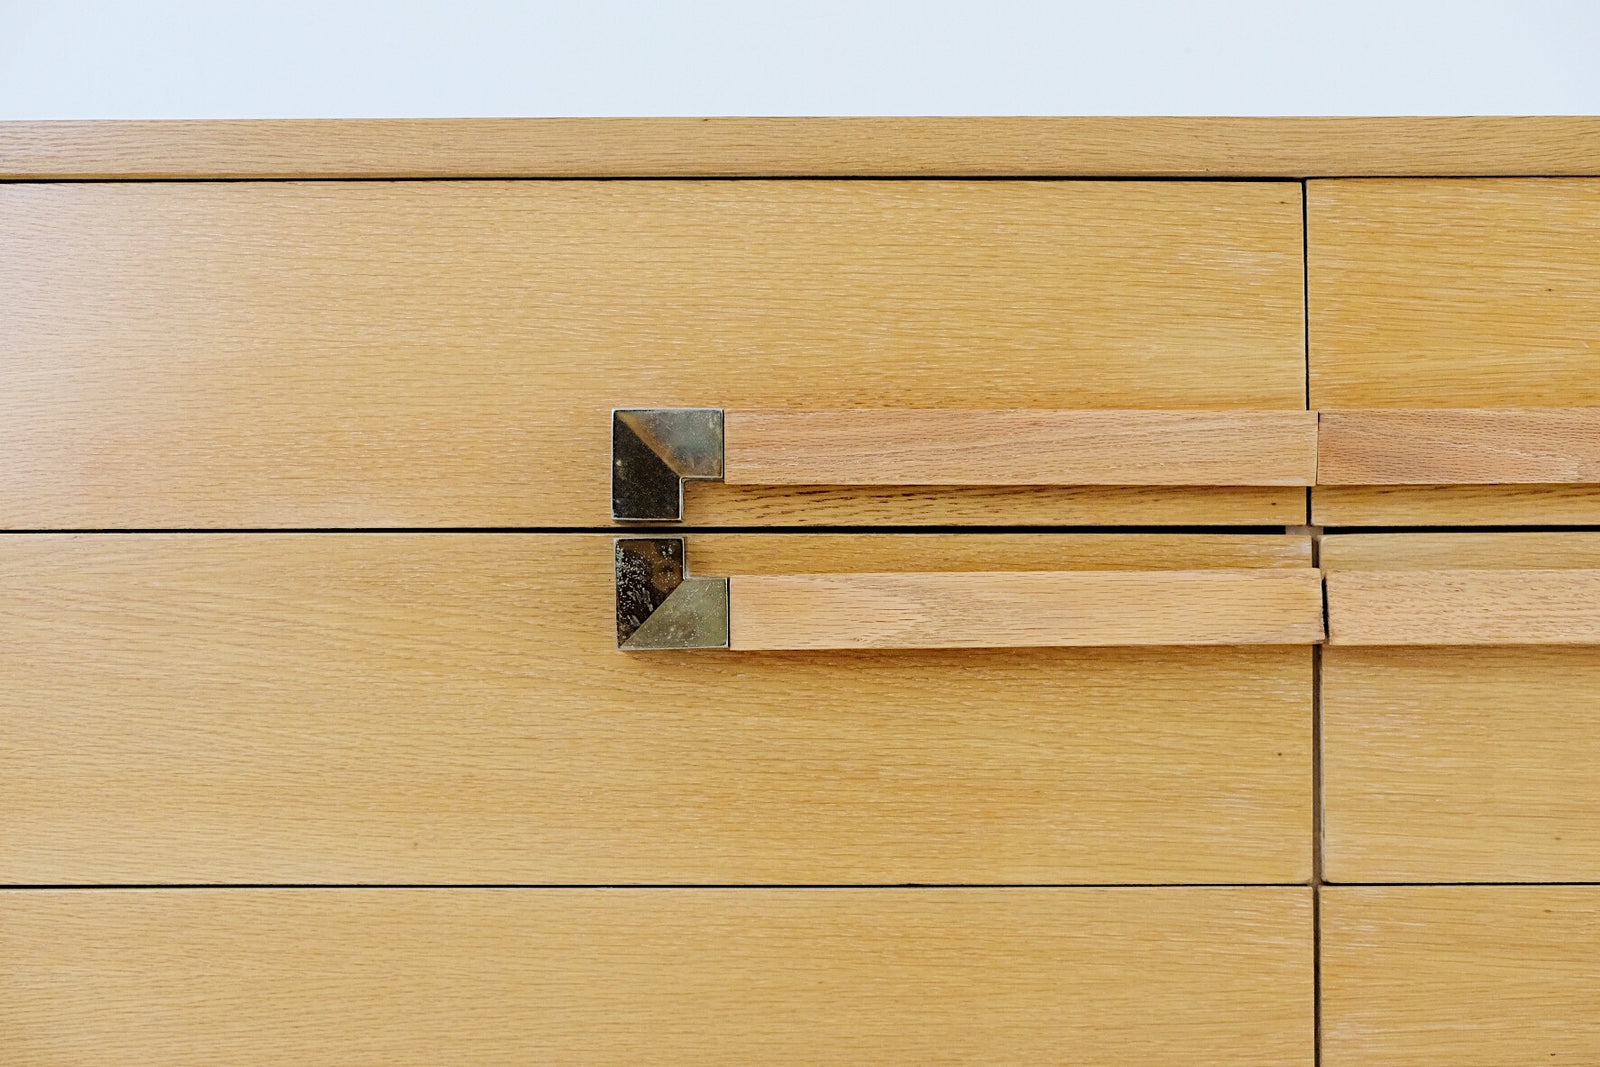 Sandy Birch Dresser Six Drawers Mid Century Or Seventies Sculptural Wooden Handles with Brass Accents